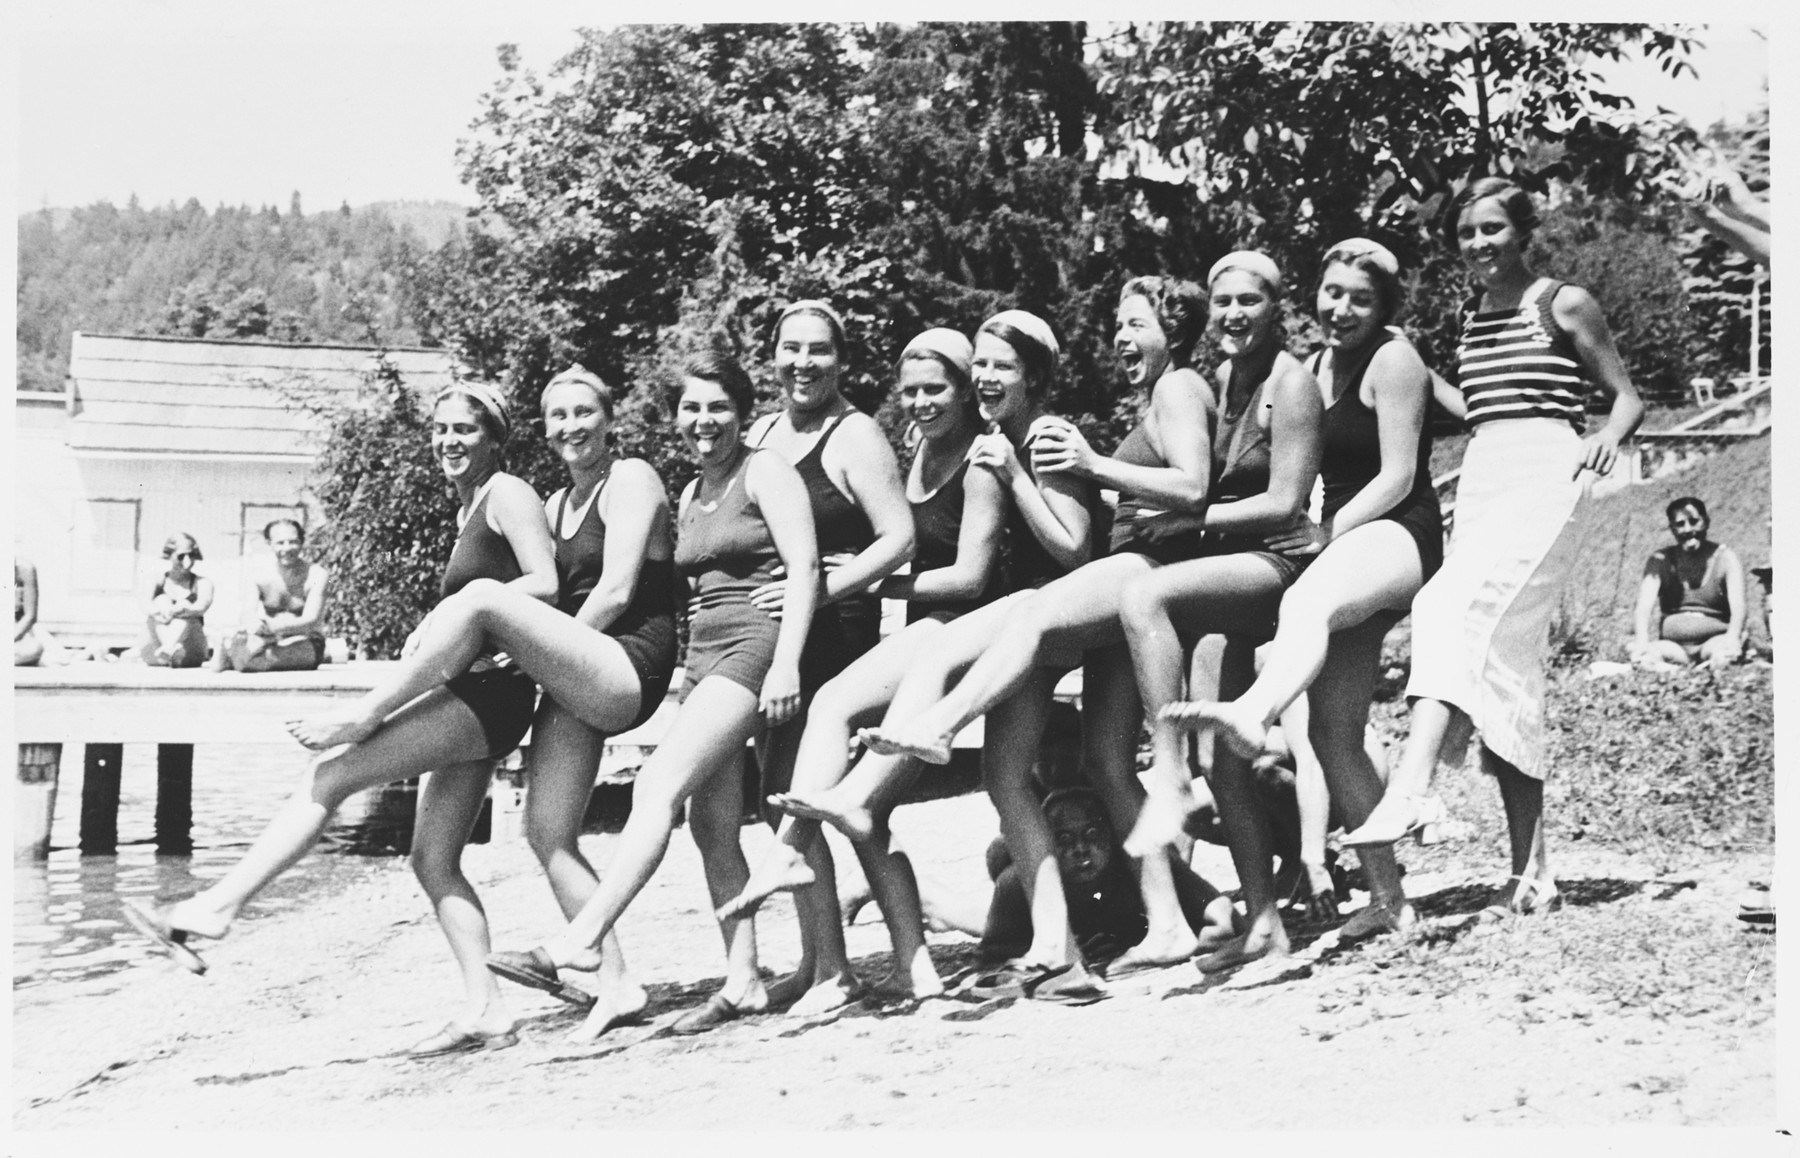 A group of female swimmers pose on the beach.  Among those pictured are: Ruth Langer (third from the right), Anna-Marie Pick (second from the right), and Judith Deutsch (sixth from the right).